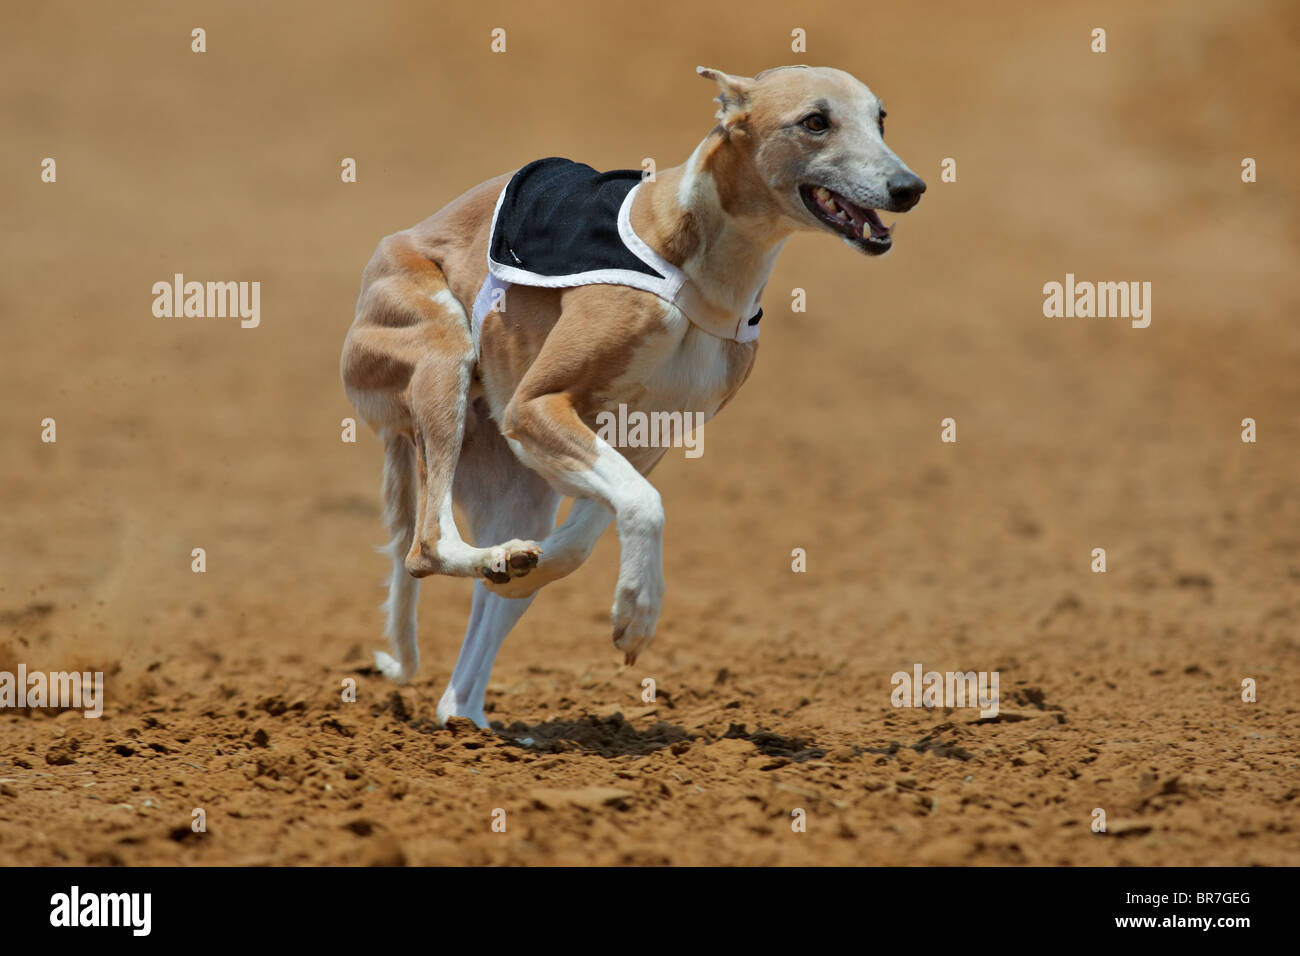 Whippet dog at full speed during a race - Stock Image